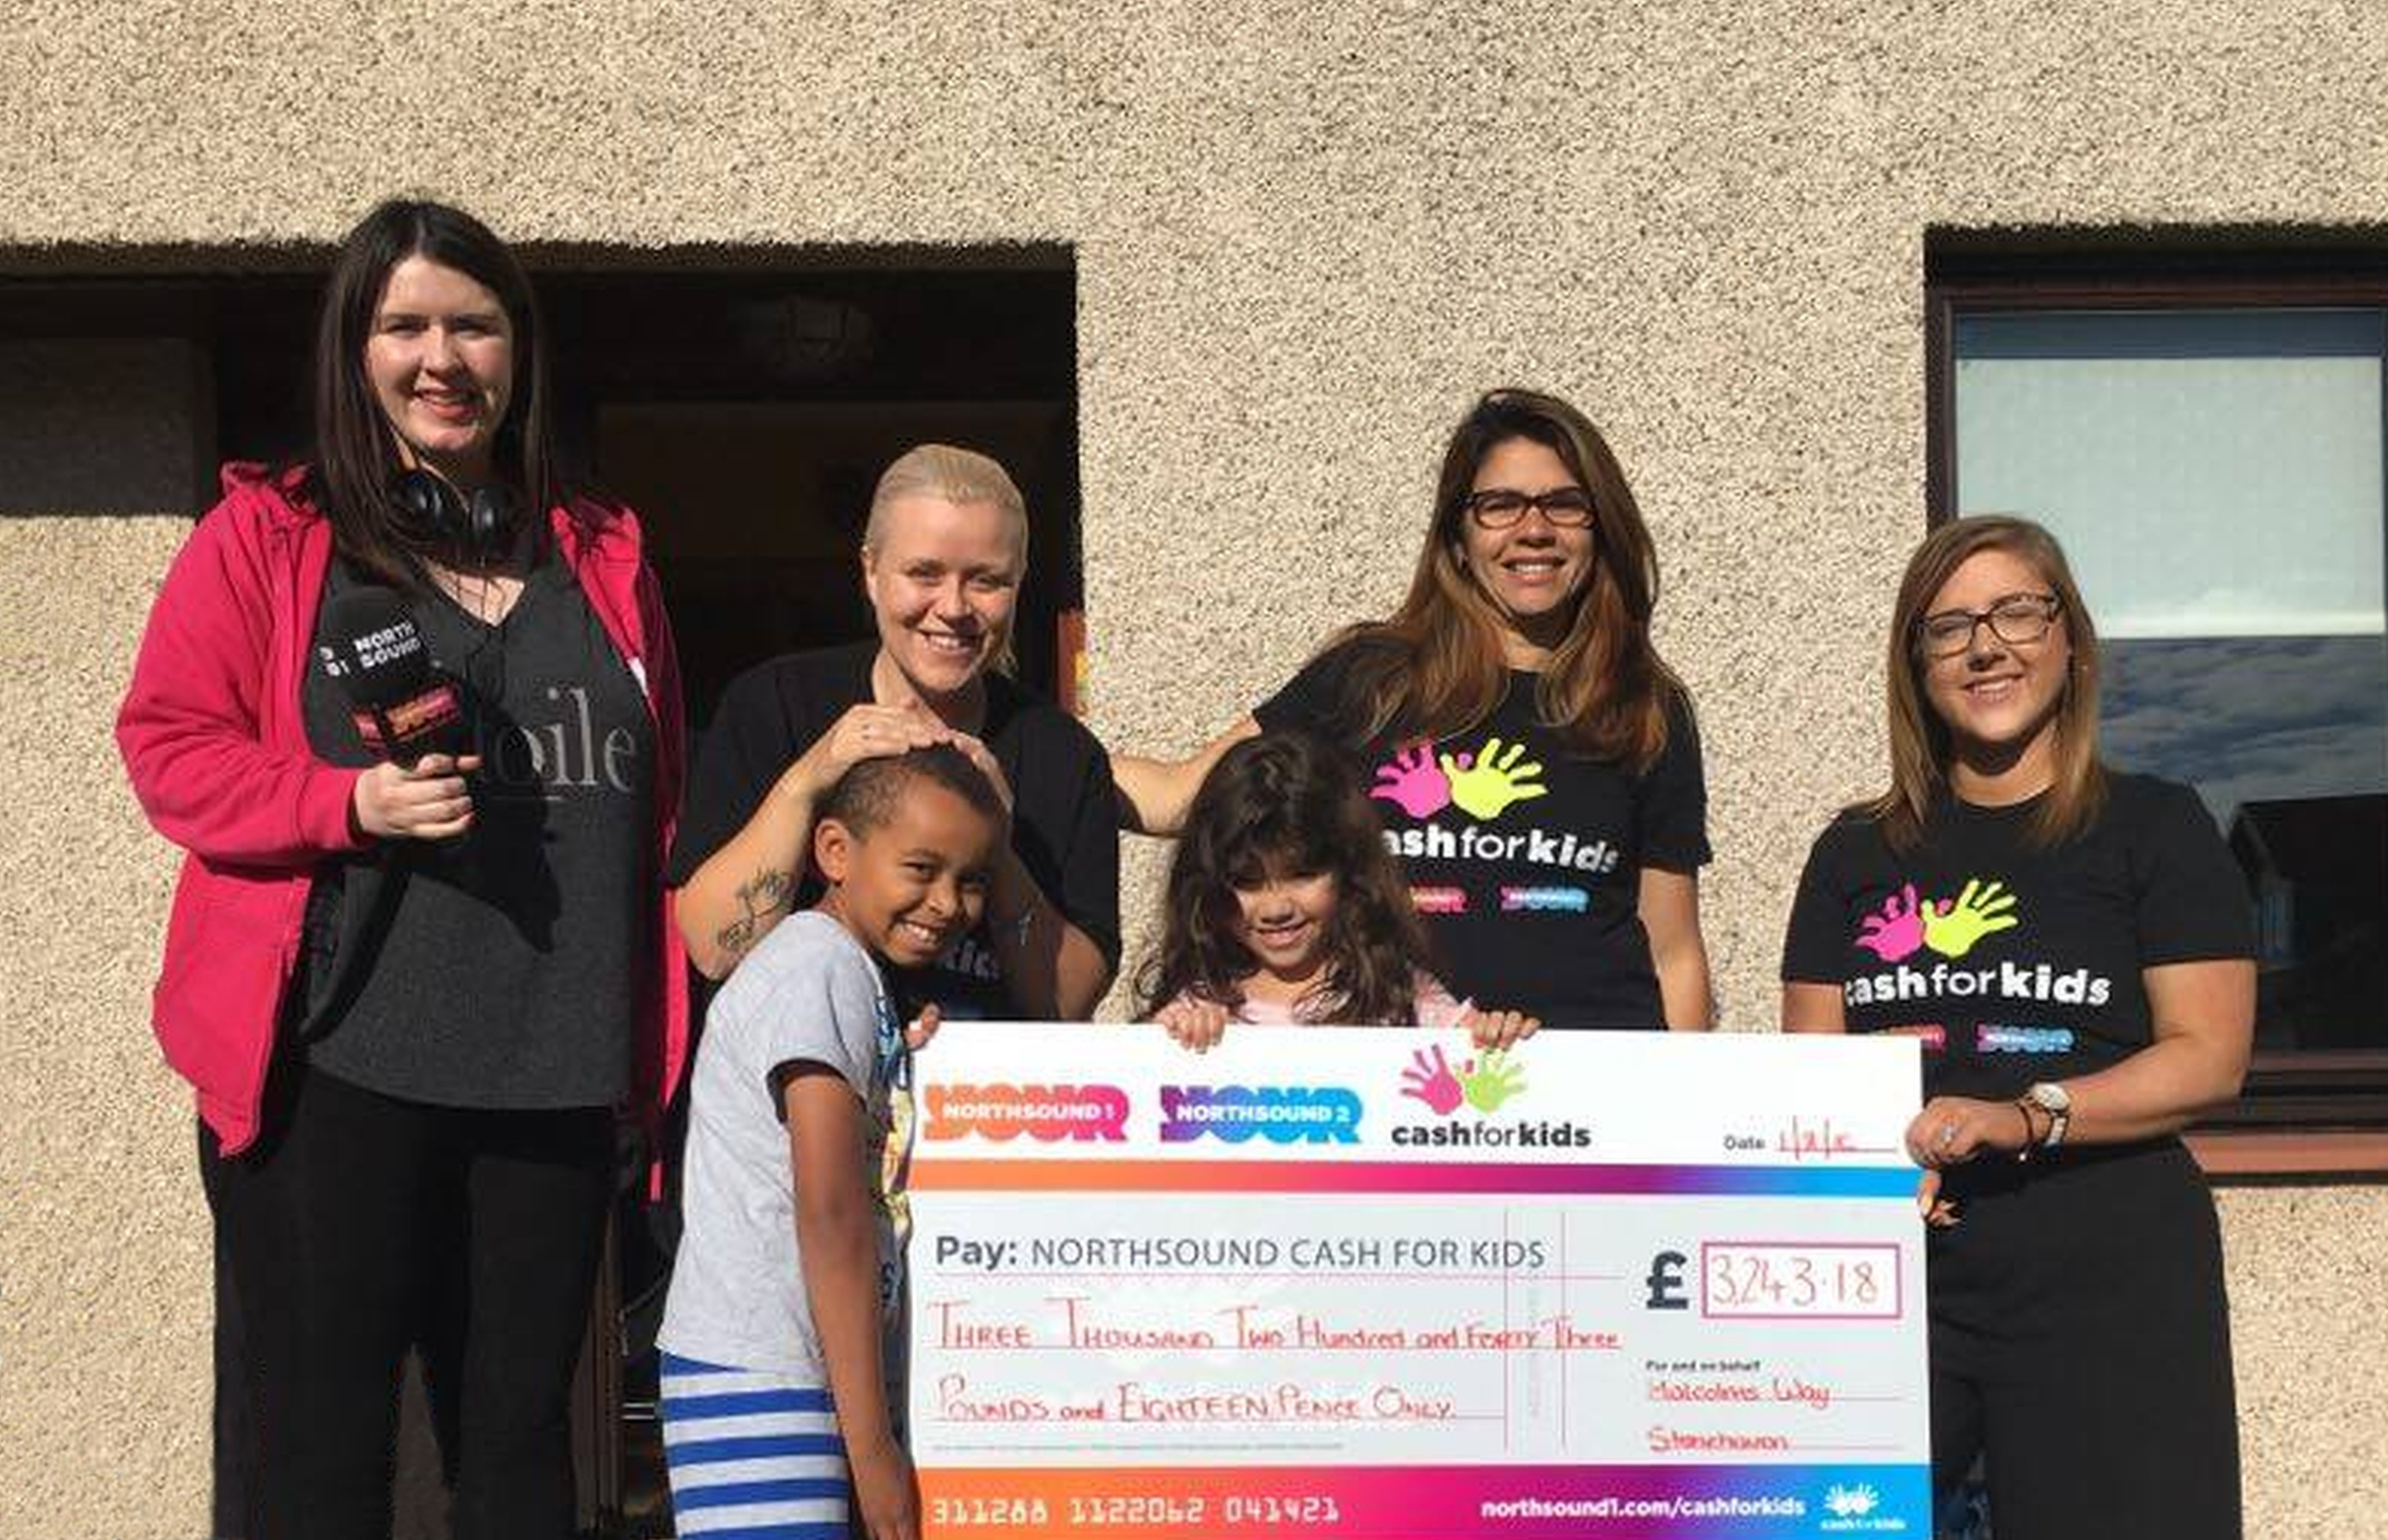 Nina Holmes (right) and Suzie McFadden (left) of Cash for Kids with Patricia Bruce (second right) and fellow residents of Malcolm's Way Stoneh